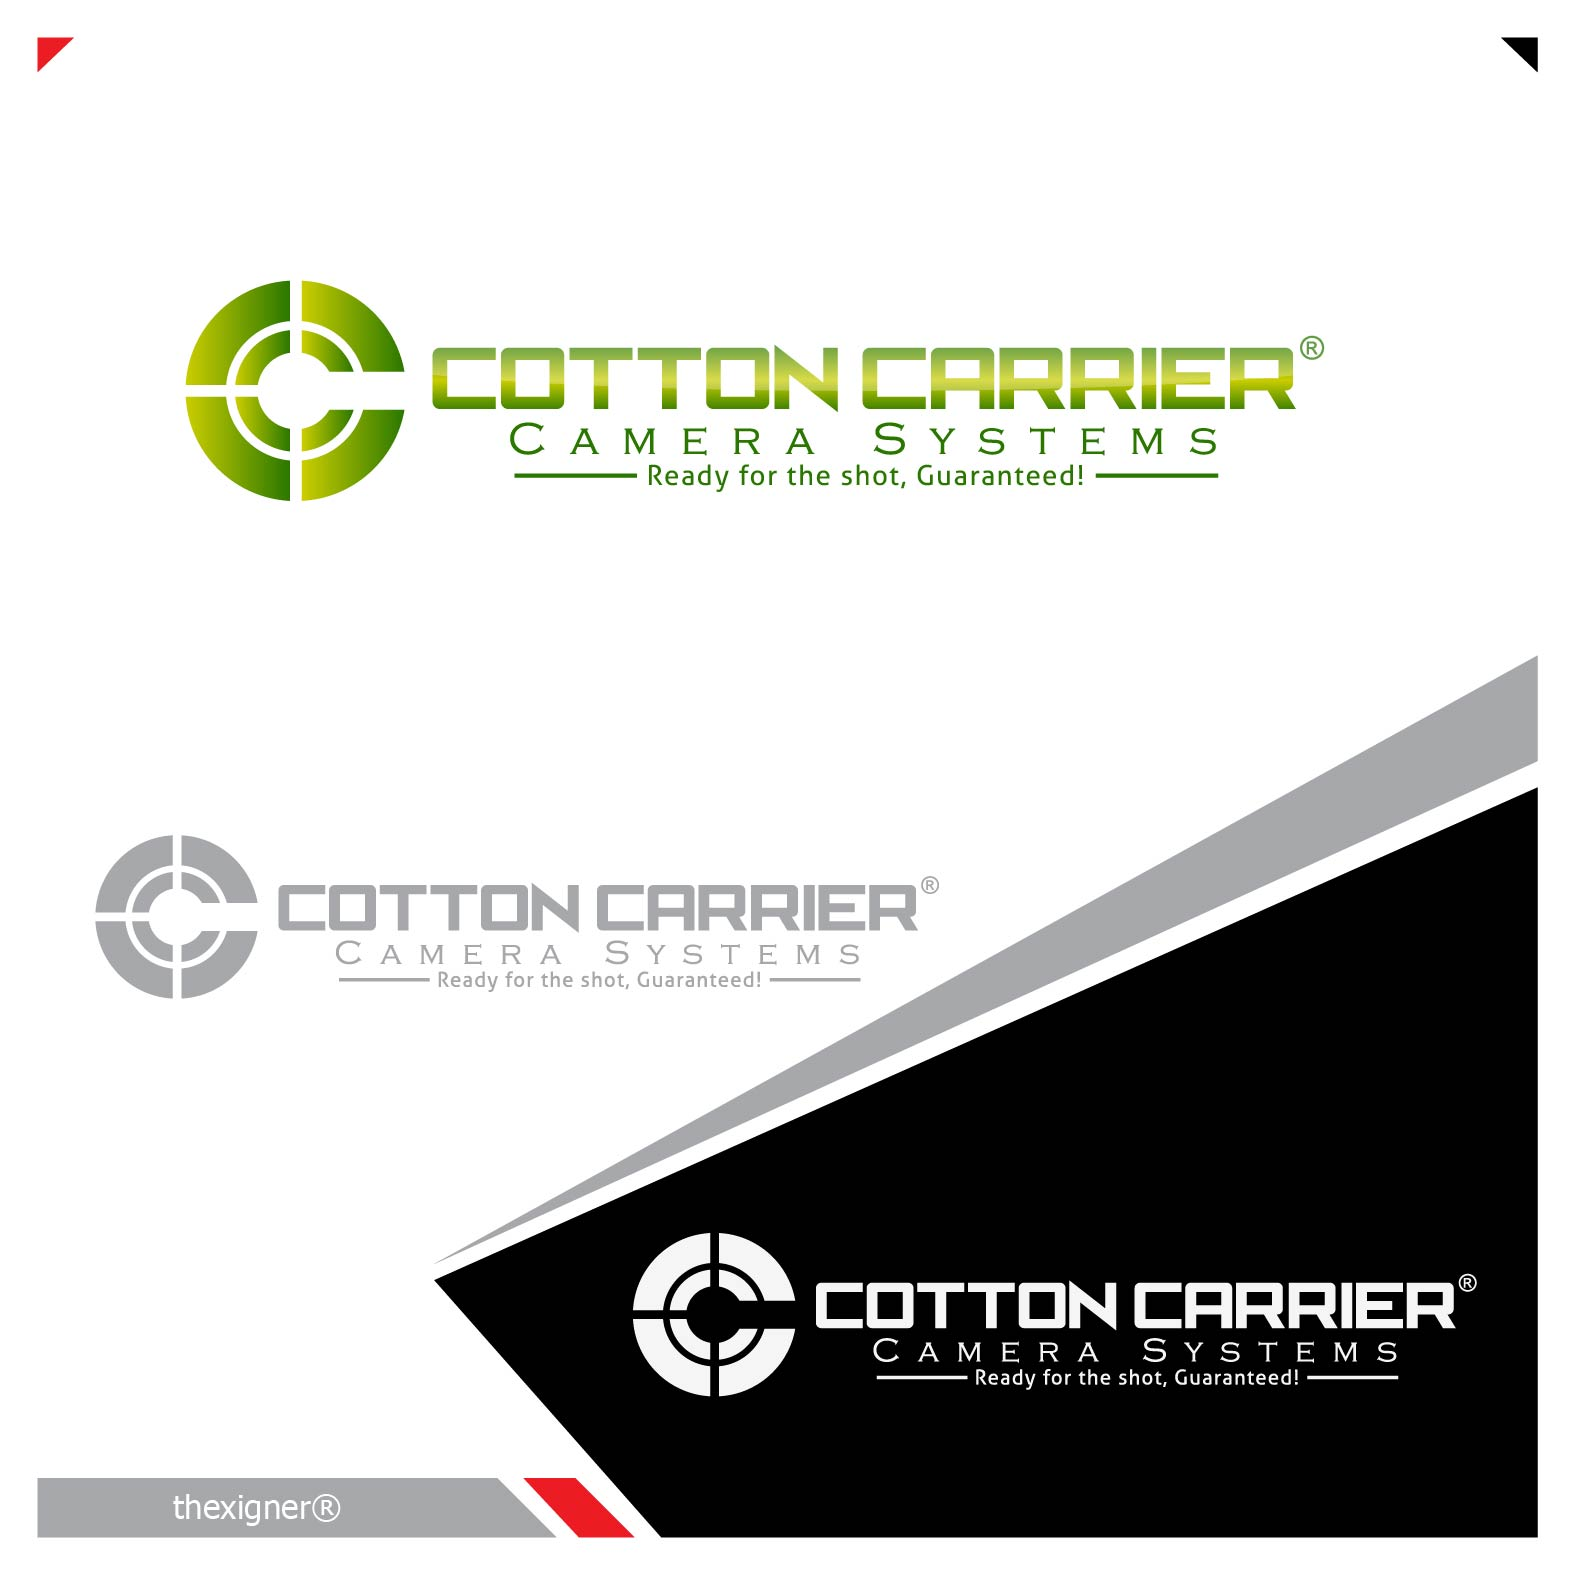 Logo Design by lagalag - Entry No. 25 in the Logo Design Contest Cotton Carrier Camera Systems Logo Design.